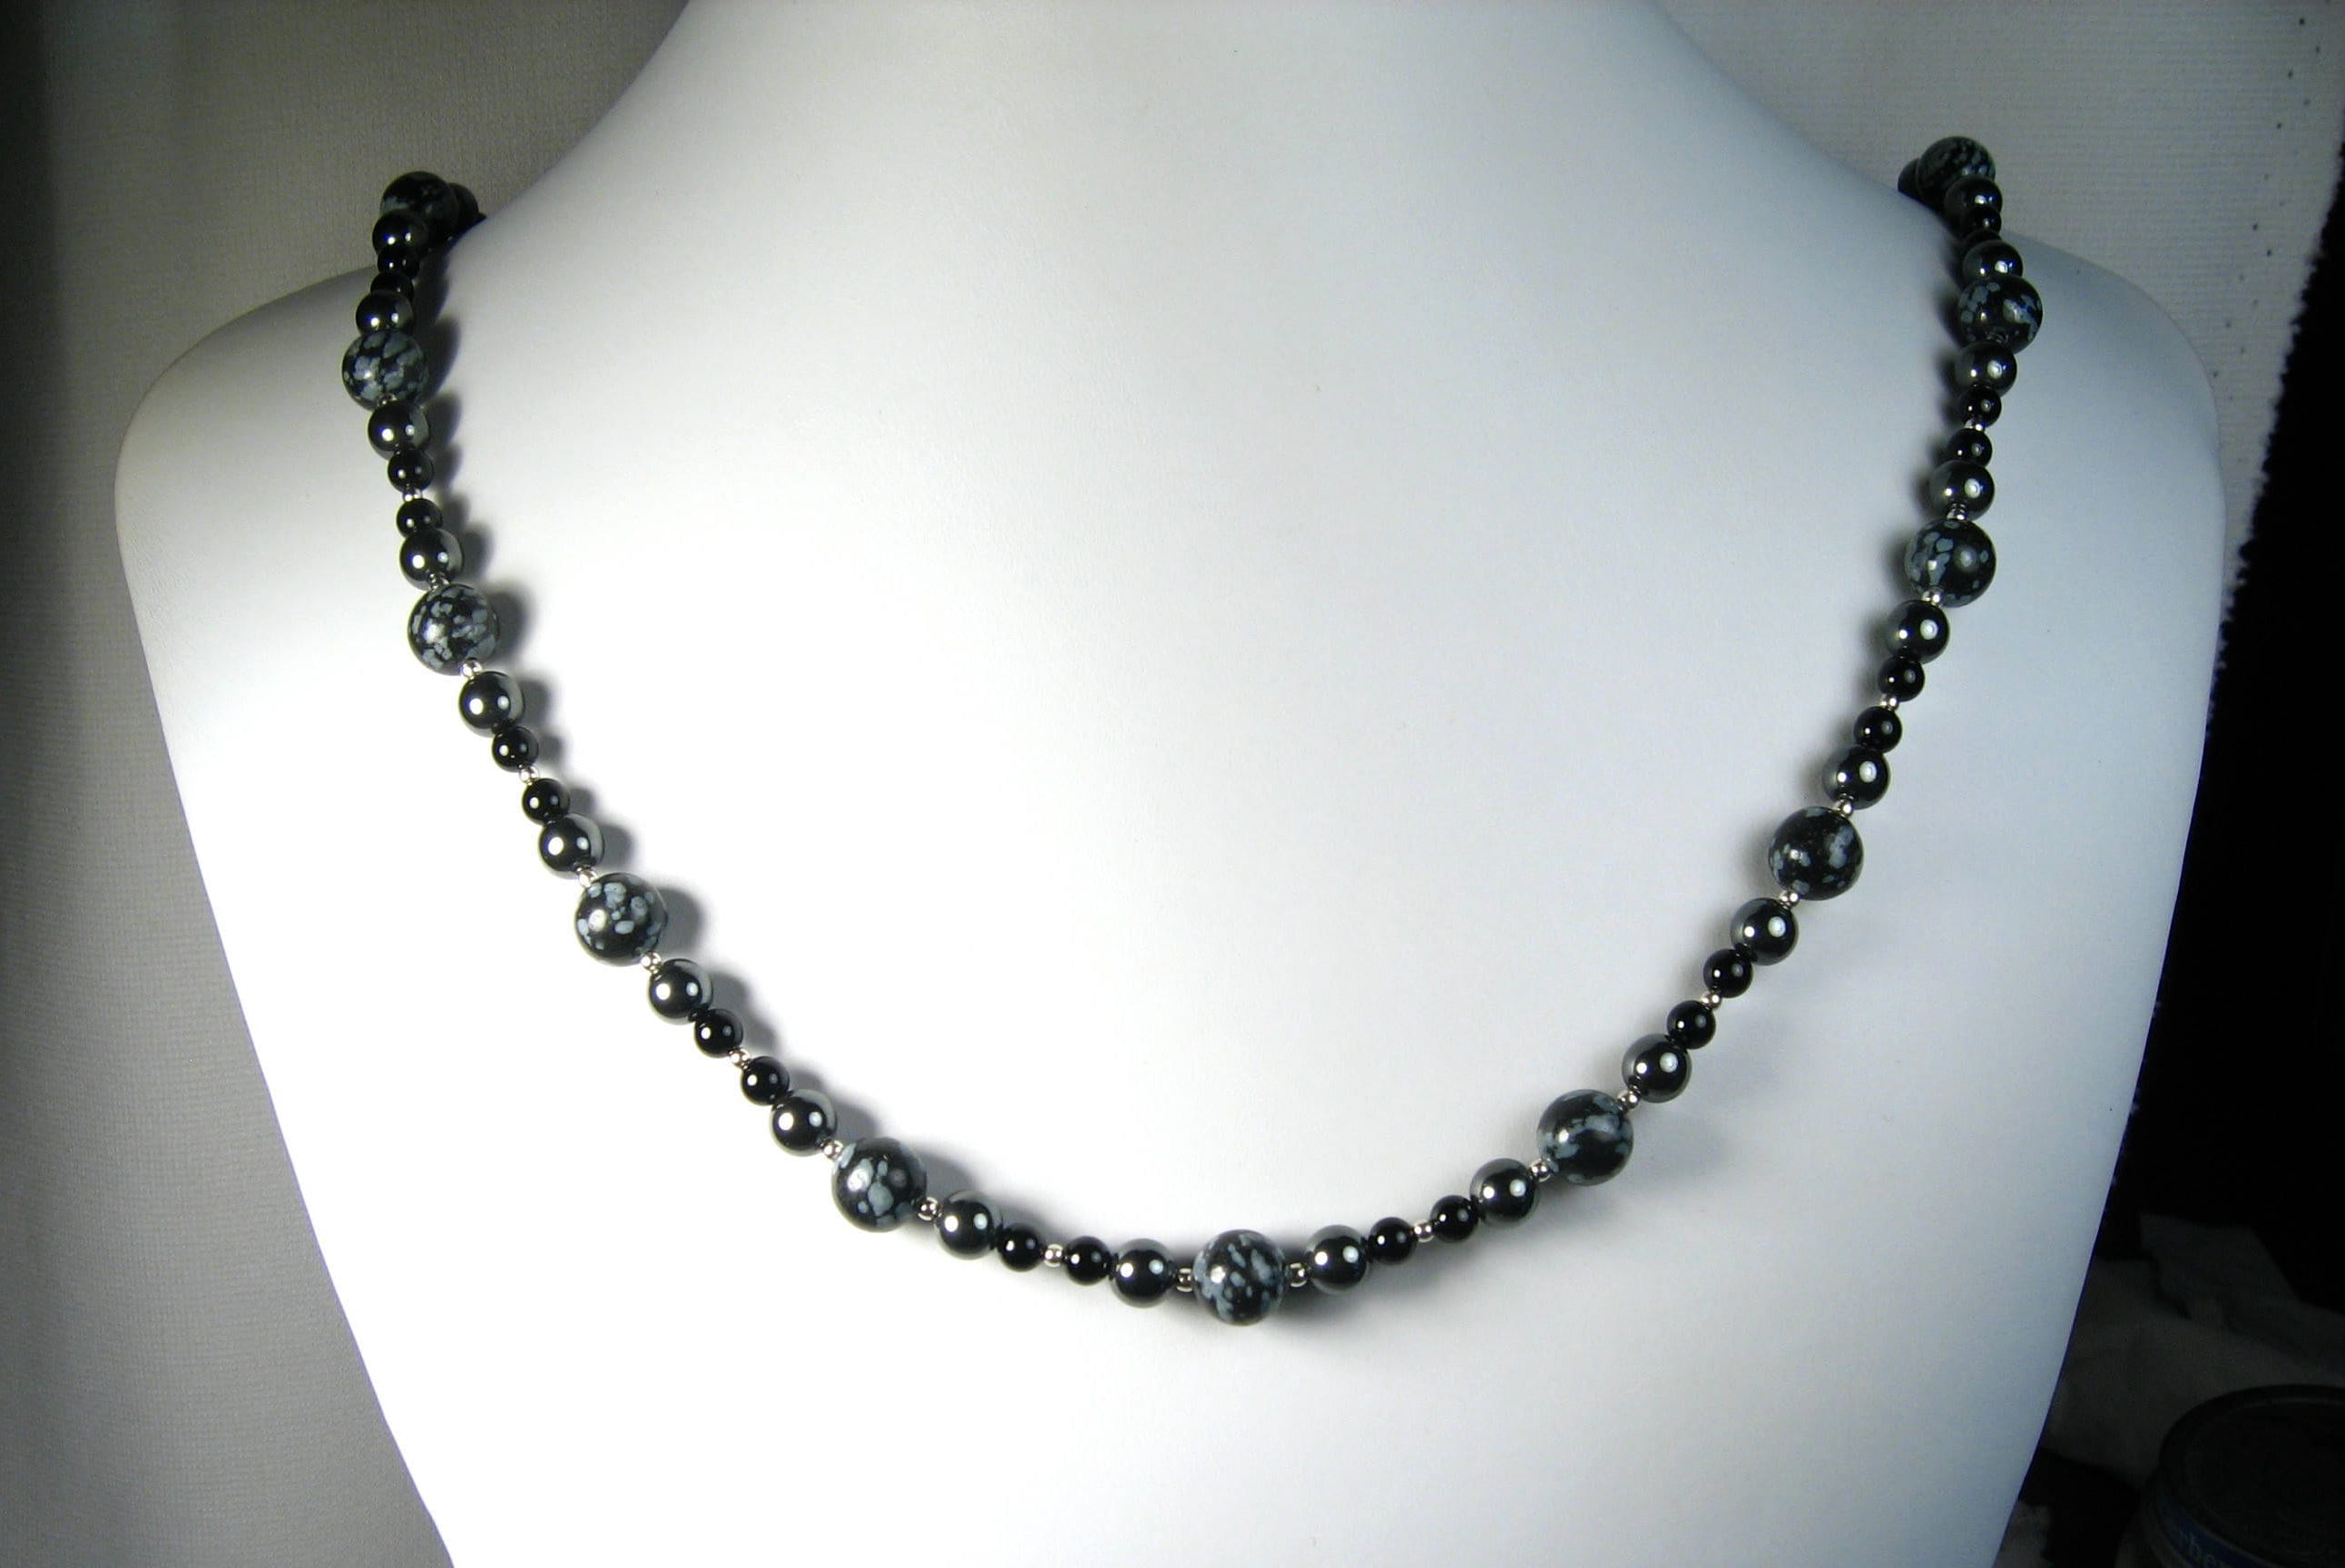 bead silver and product black necklace design onyx neclace hand knotted bloomingoak